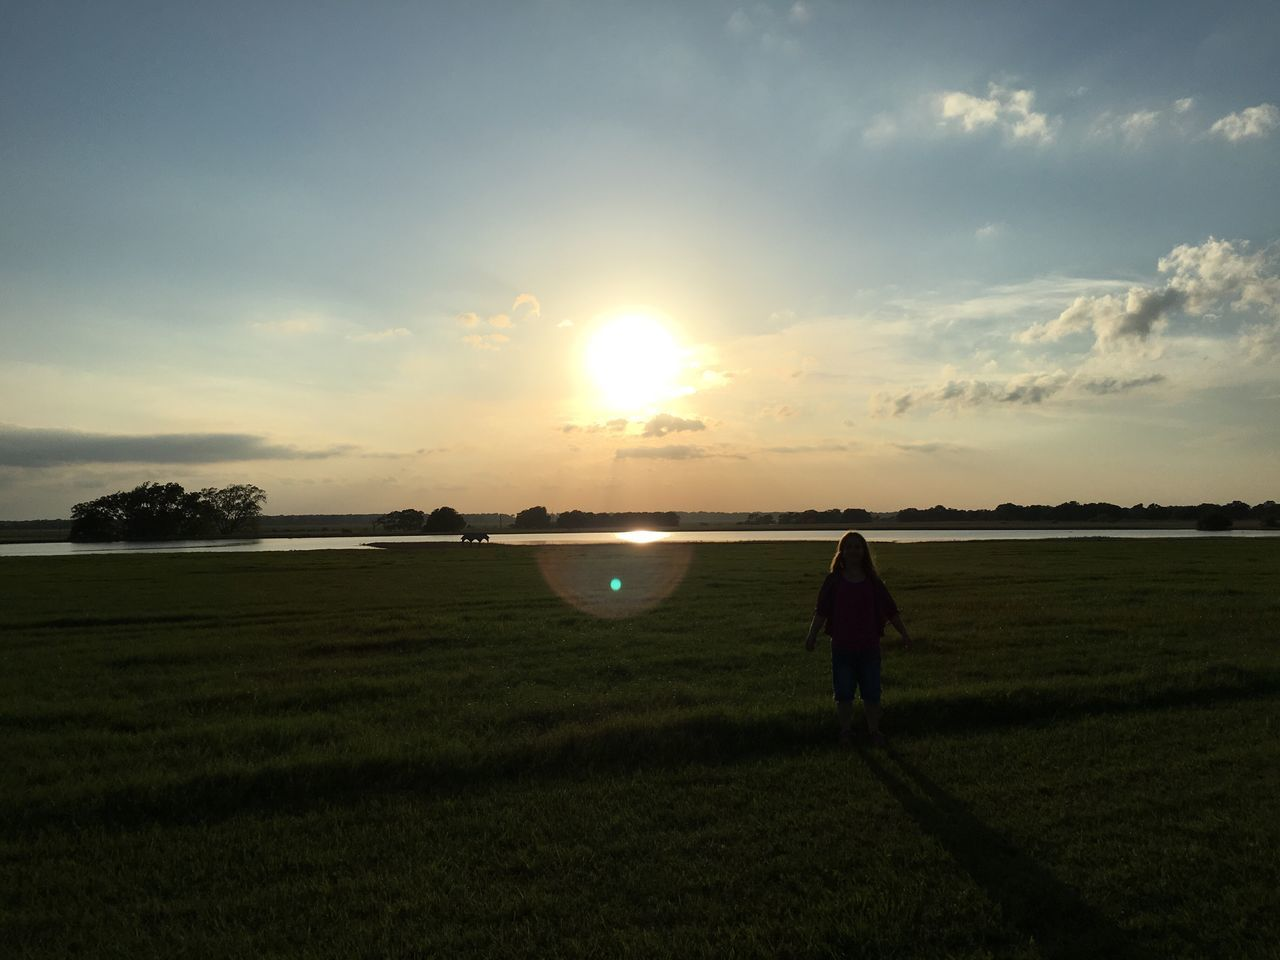 sunset, field, nature, real people, landscape, grass, beauty in nature, sun, sky, scenics, rear view, silhouette, one person, leisure activity, men, growth, standing, tranquility, sunlight, tranquil scene, outdoors, lifestyles, agriculture, full length, cloud - sky, rural scene, tree, day, people